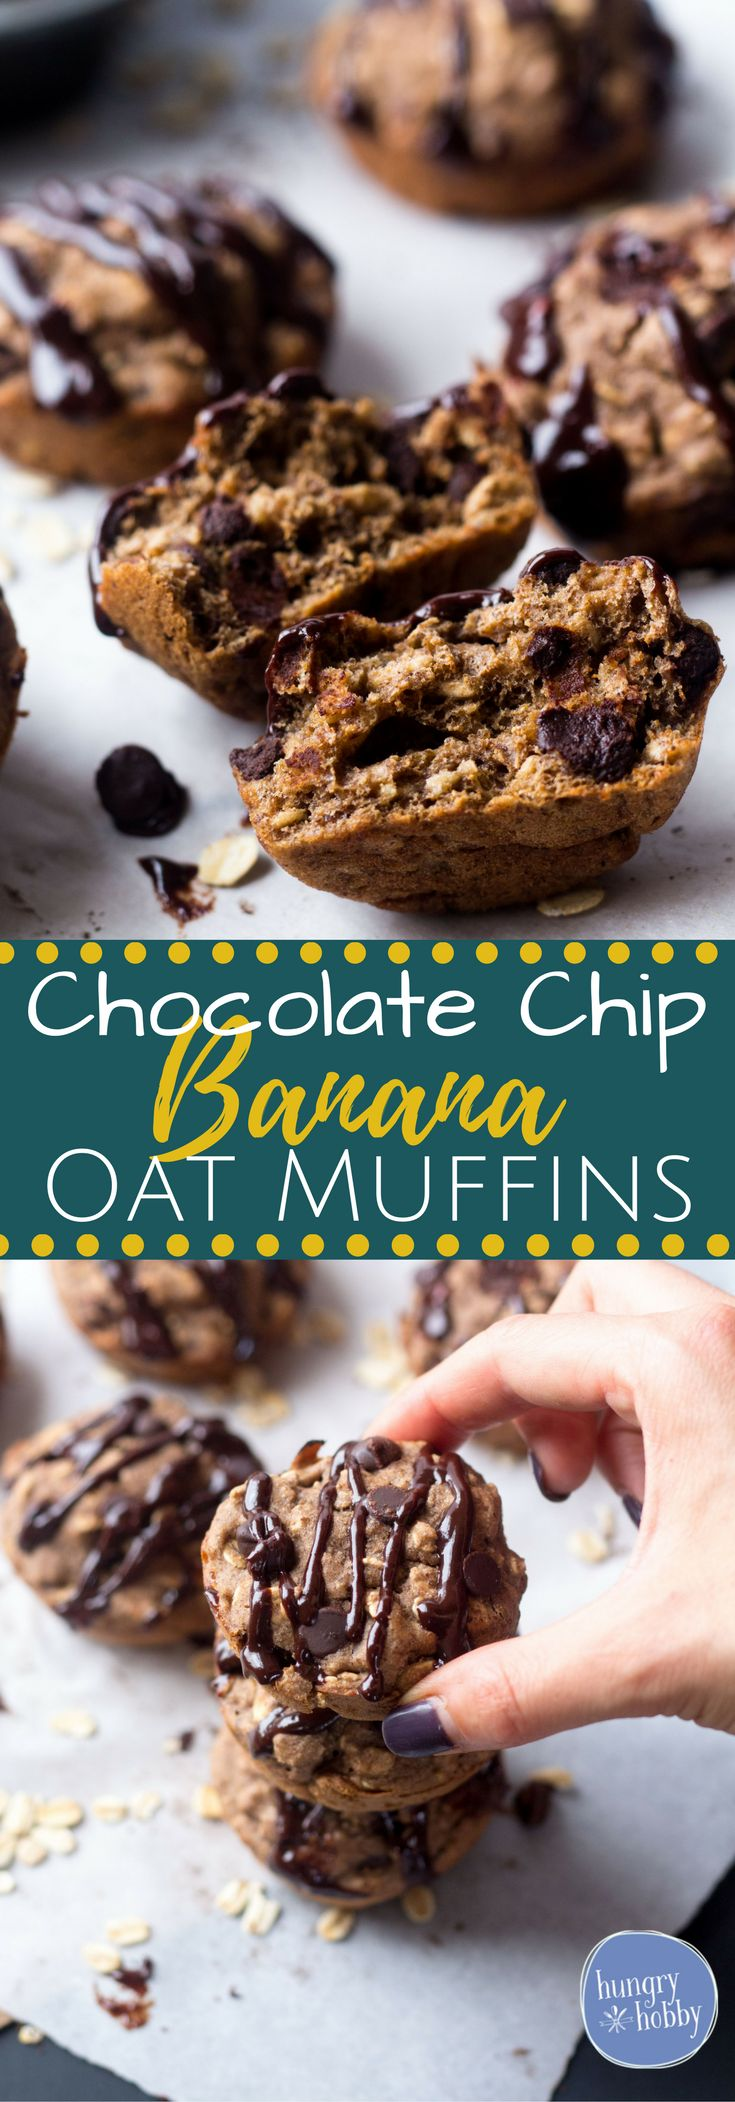 One Bowl Chocolate Chip Banana Oat Muffins - 135 calories per muffin, bursting with a balance of wholesome ingredients & sweet chocolate chips! via @hungryhobby